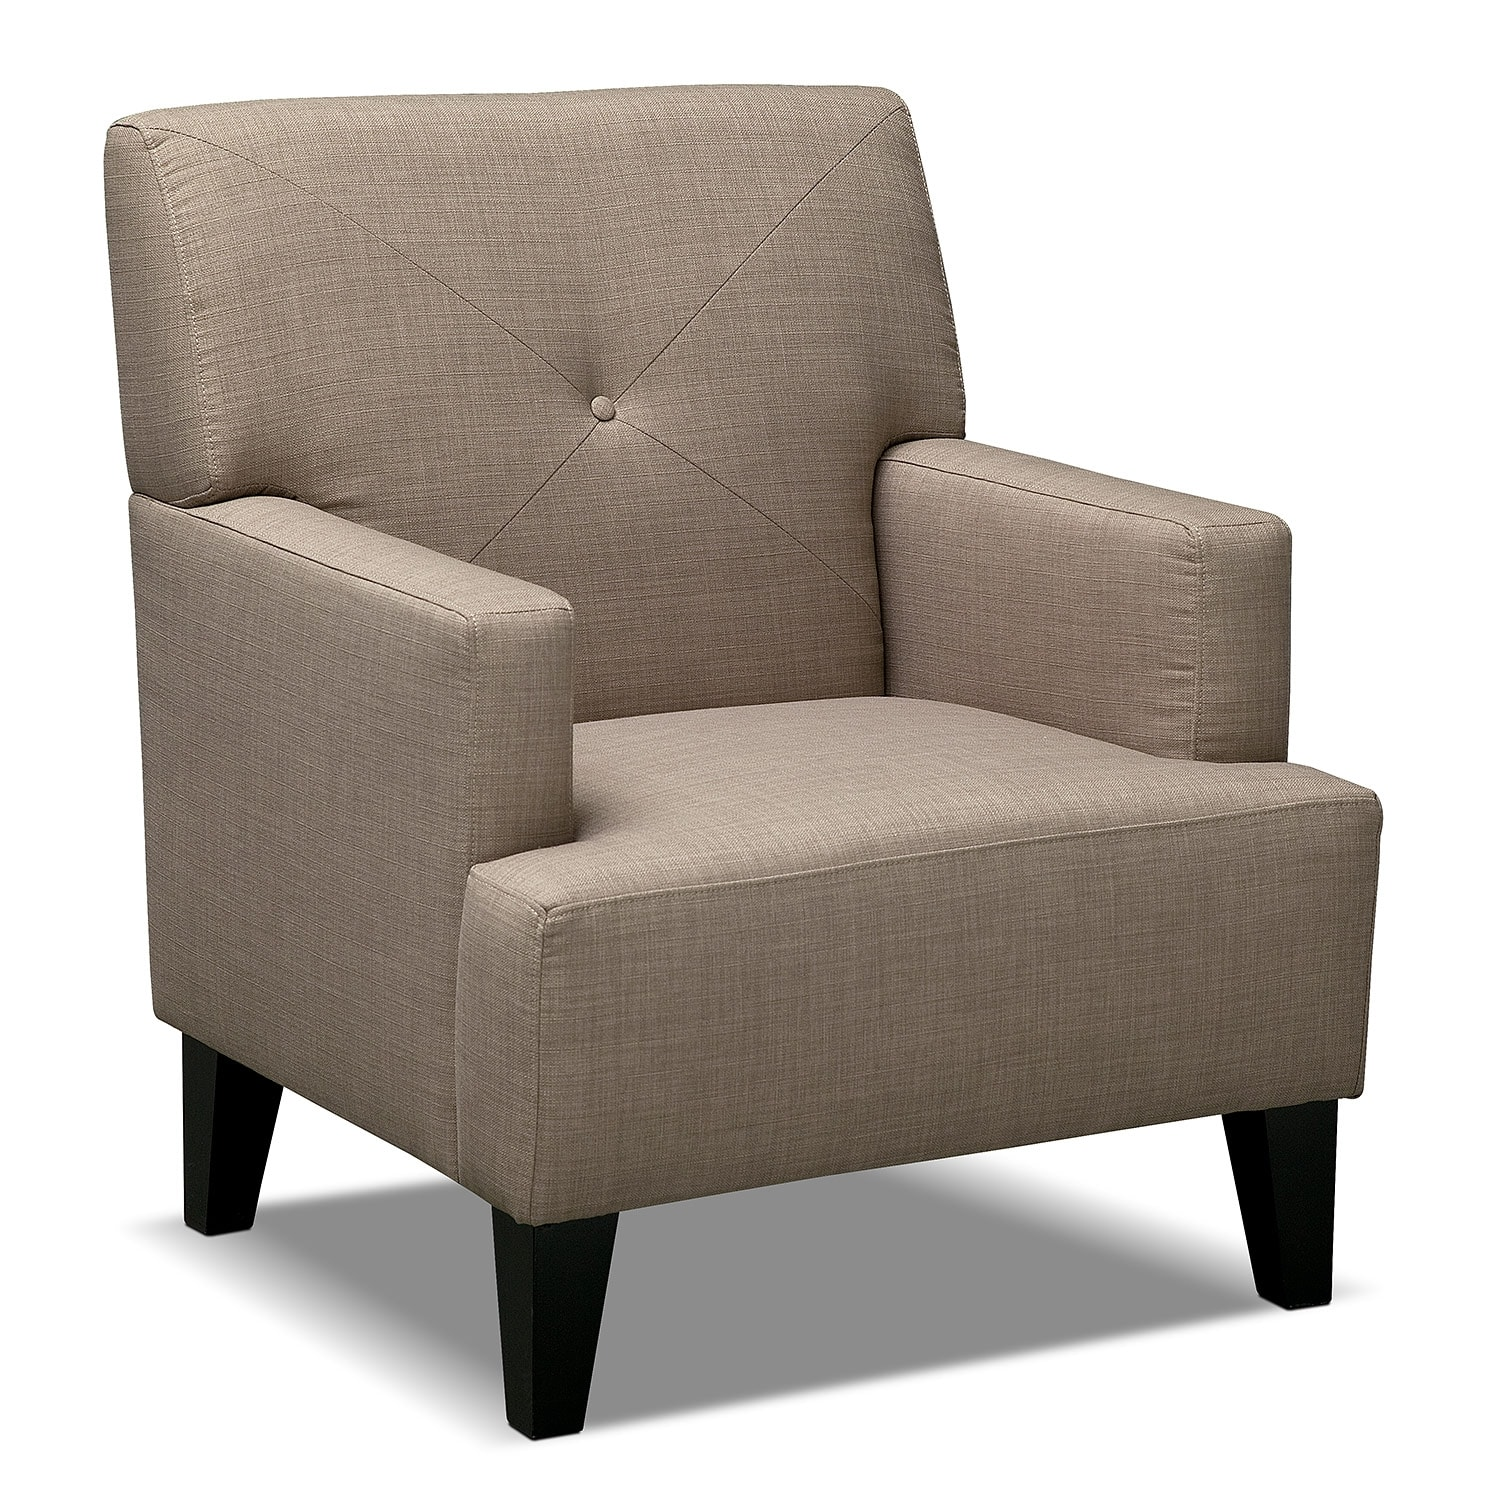 Avalon accent chair wheat value city furniture for Sitting room chairs